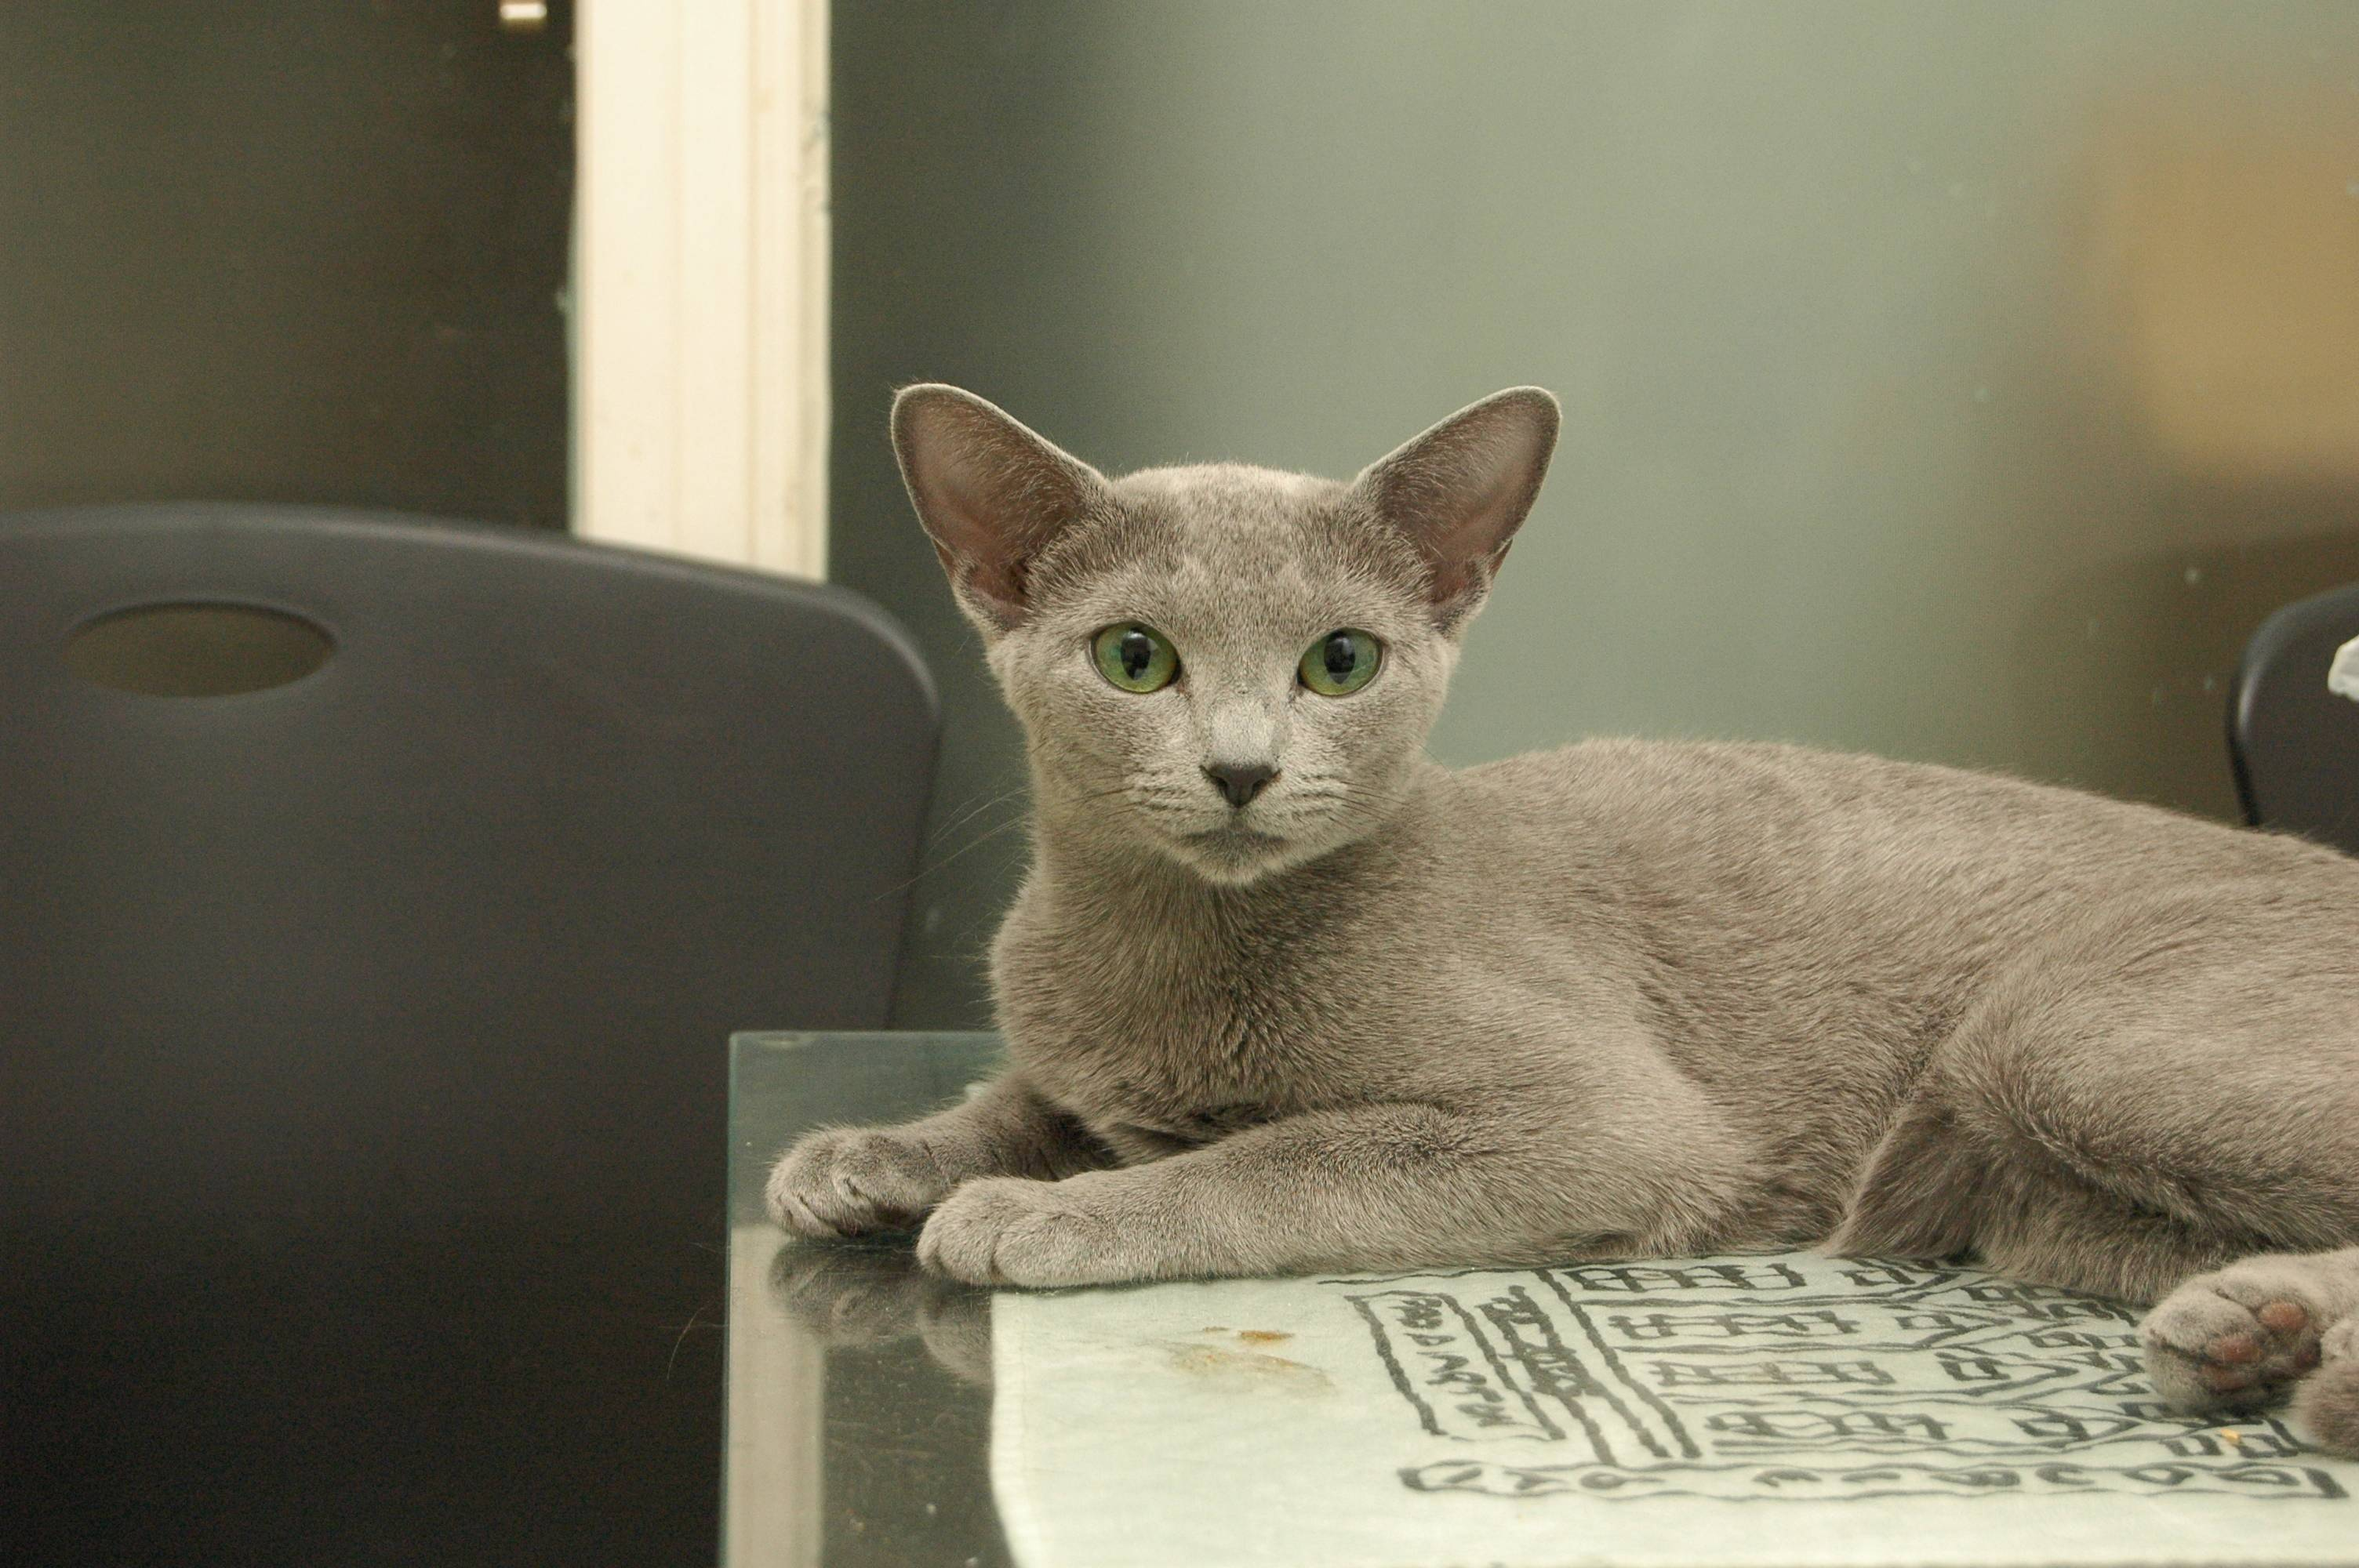 Lincoln State Cat Club member Marci Baturin of Carpentersville has been breeding Russian Blues since 1970.